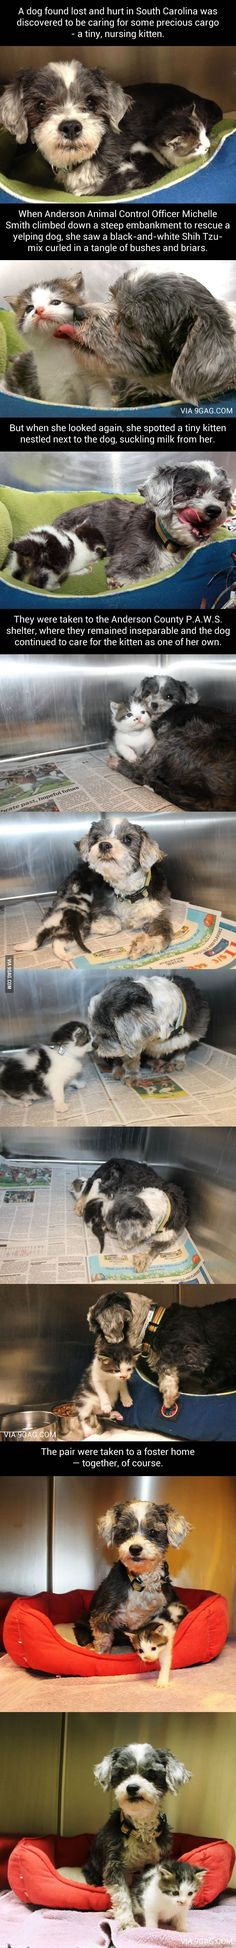 Lost Dog Finds A Tiny Kitten And Saves Her